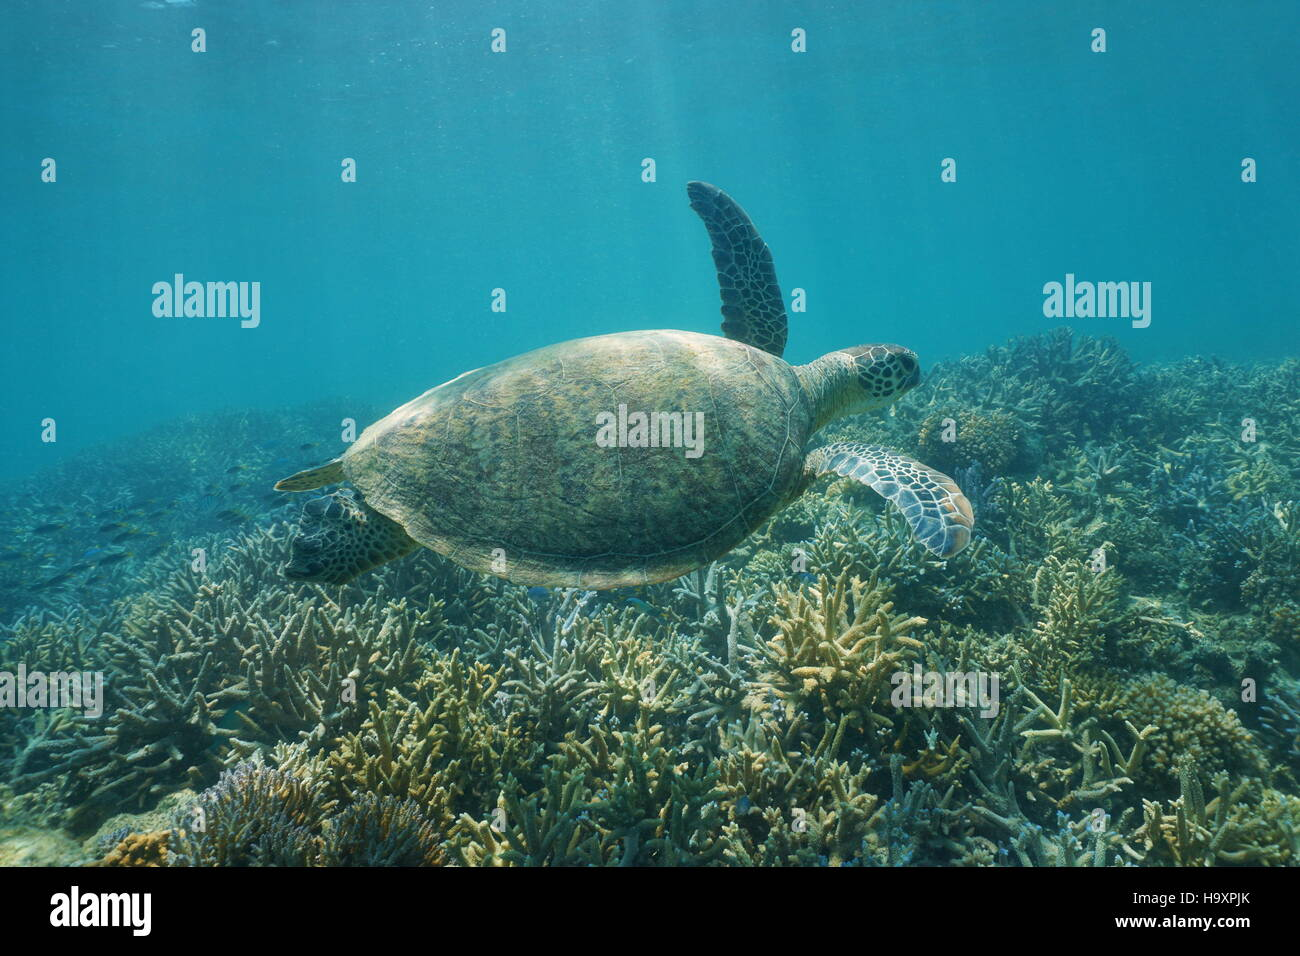 Underwater green sea turtle, Chelonia mydas, swimming over a coral reef, New Caledonia, south Pacific ocean Stock Photo